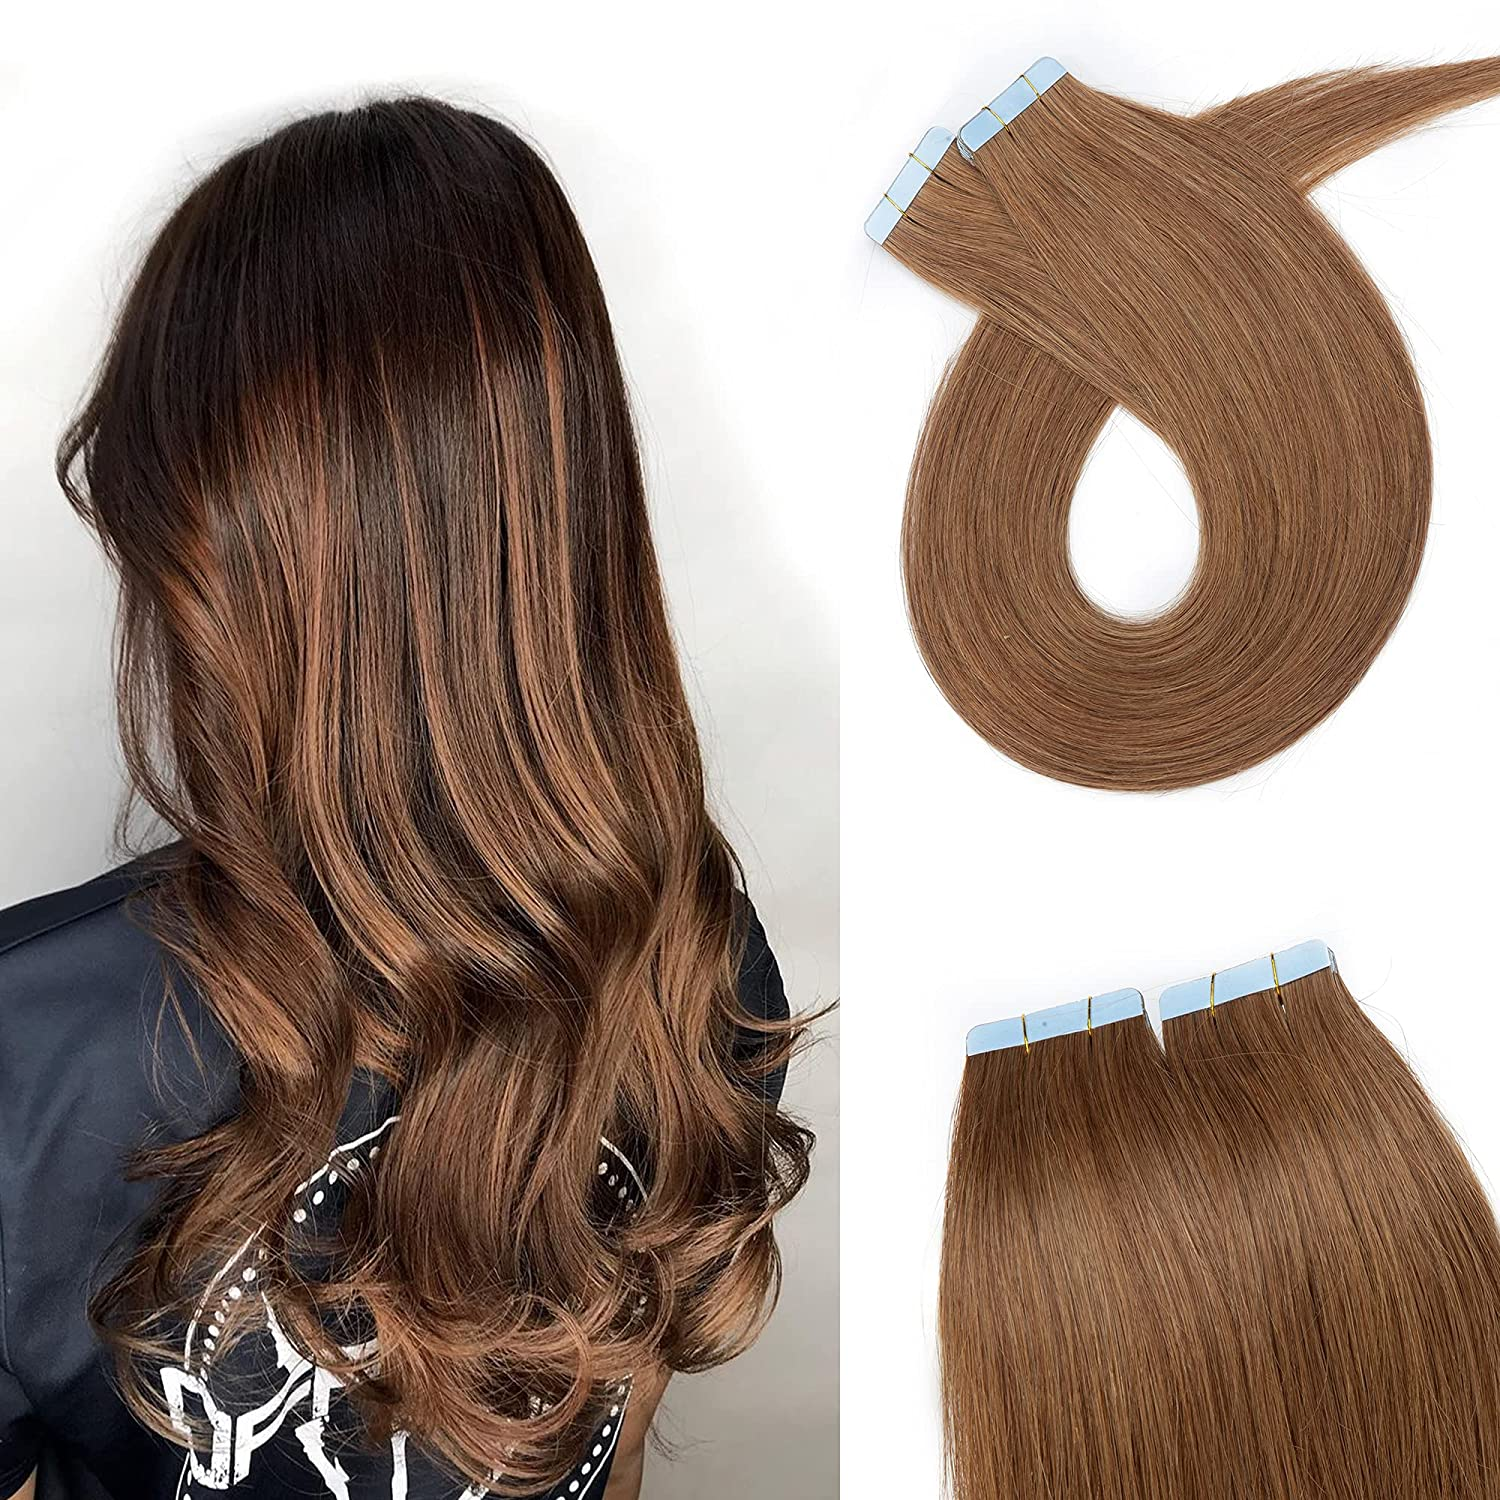 SEGO 18 Inch Direct store Tape In Hair Brown 20pcs Extensions Light 50g Ranking integrated 1st place Omb